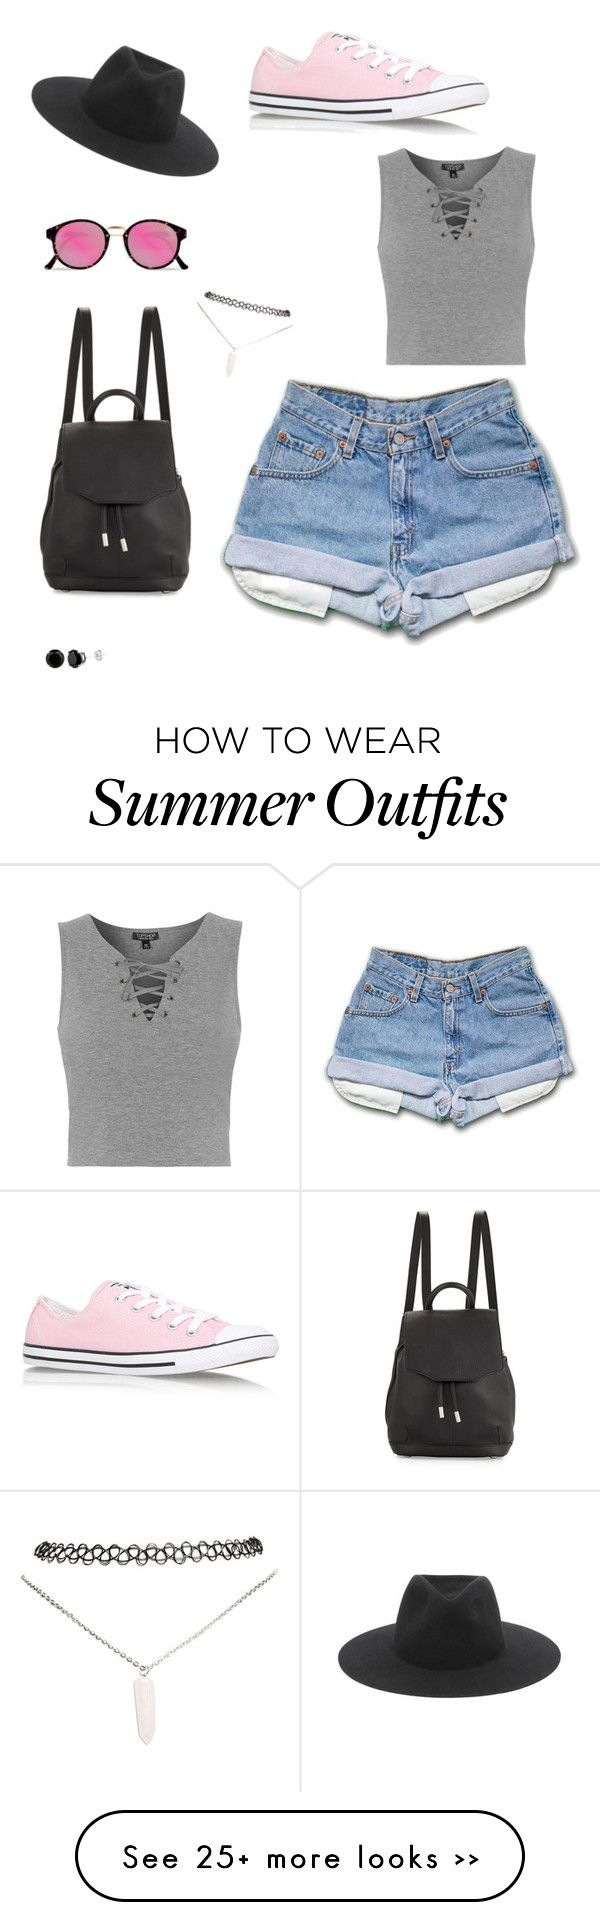 """""""summer festival outfit #1"""" by mackenikole on Polyvore featuring rag & bone, RetroSuperFuture, Topshop, Wet Seal and Converse"""